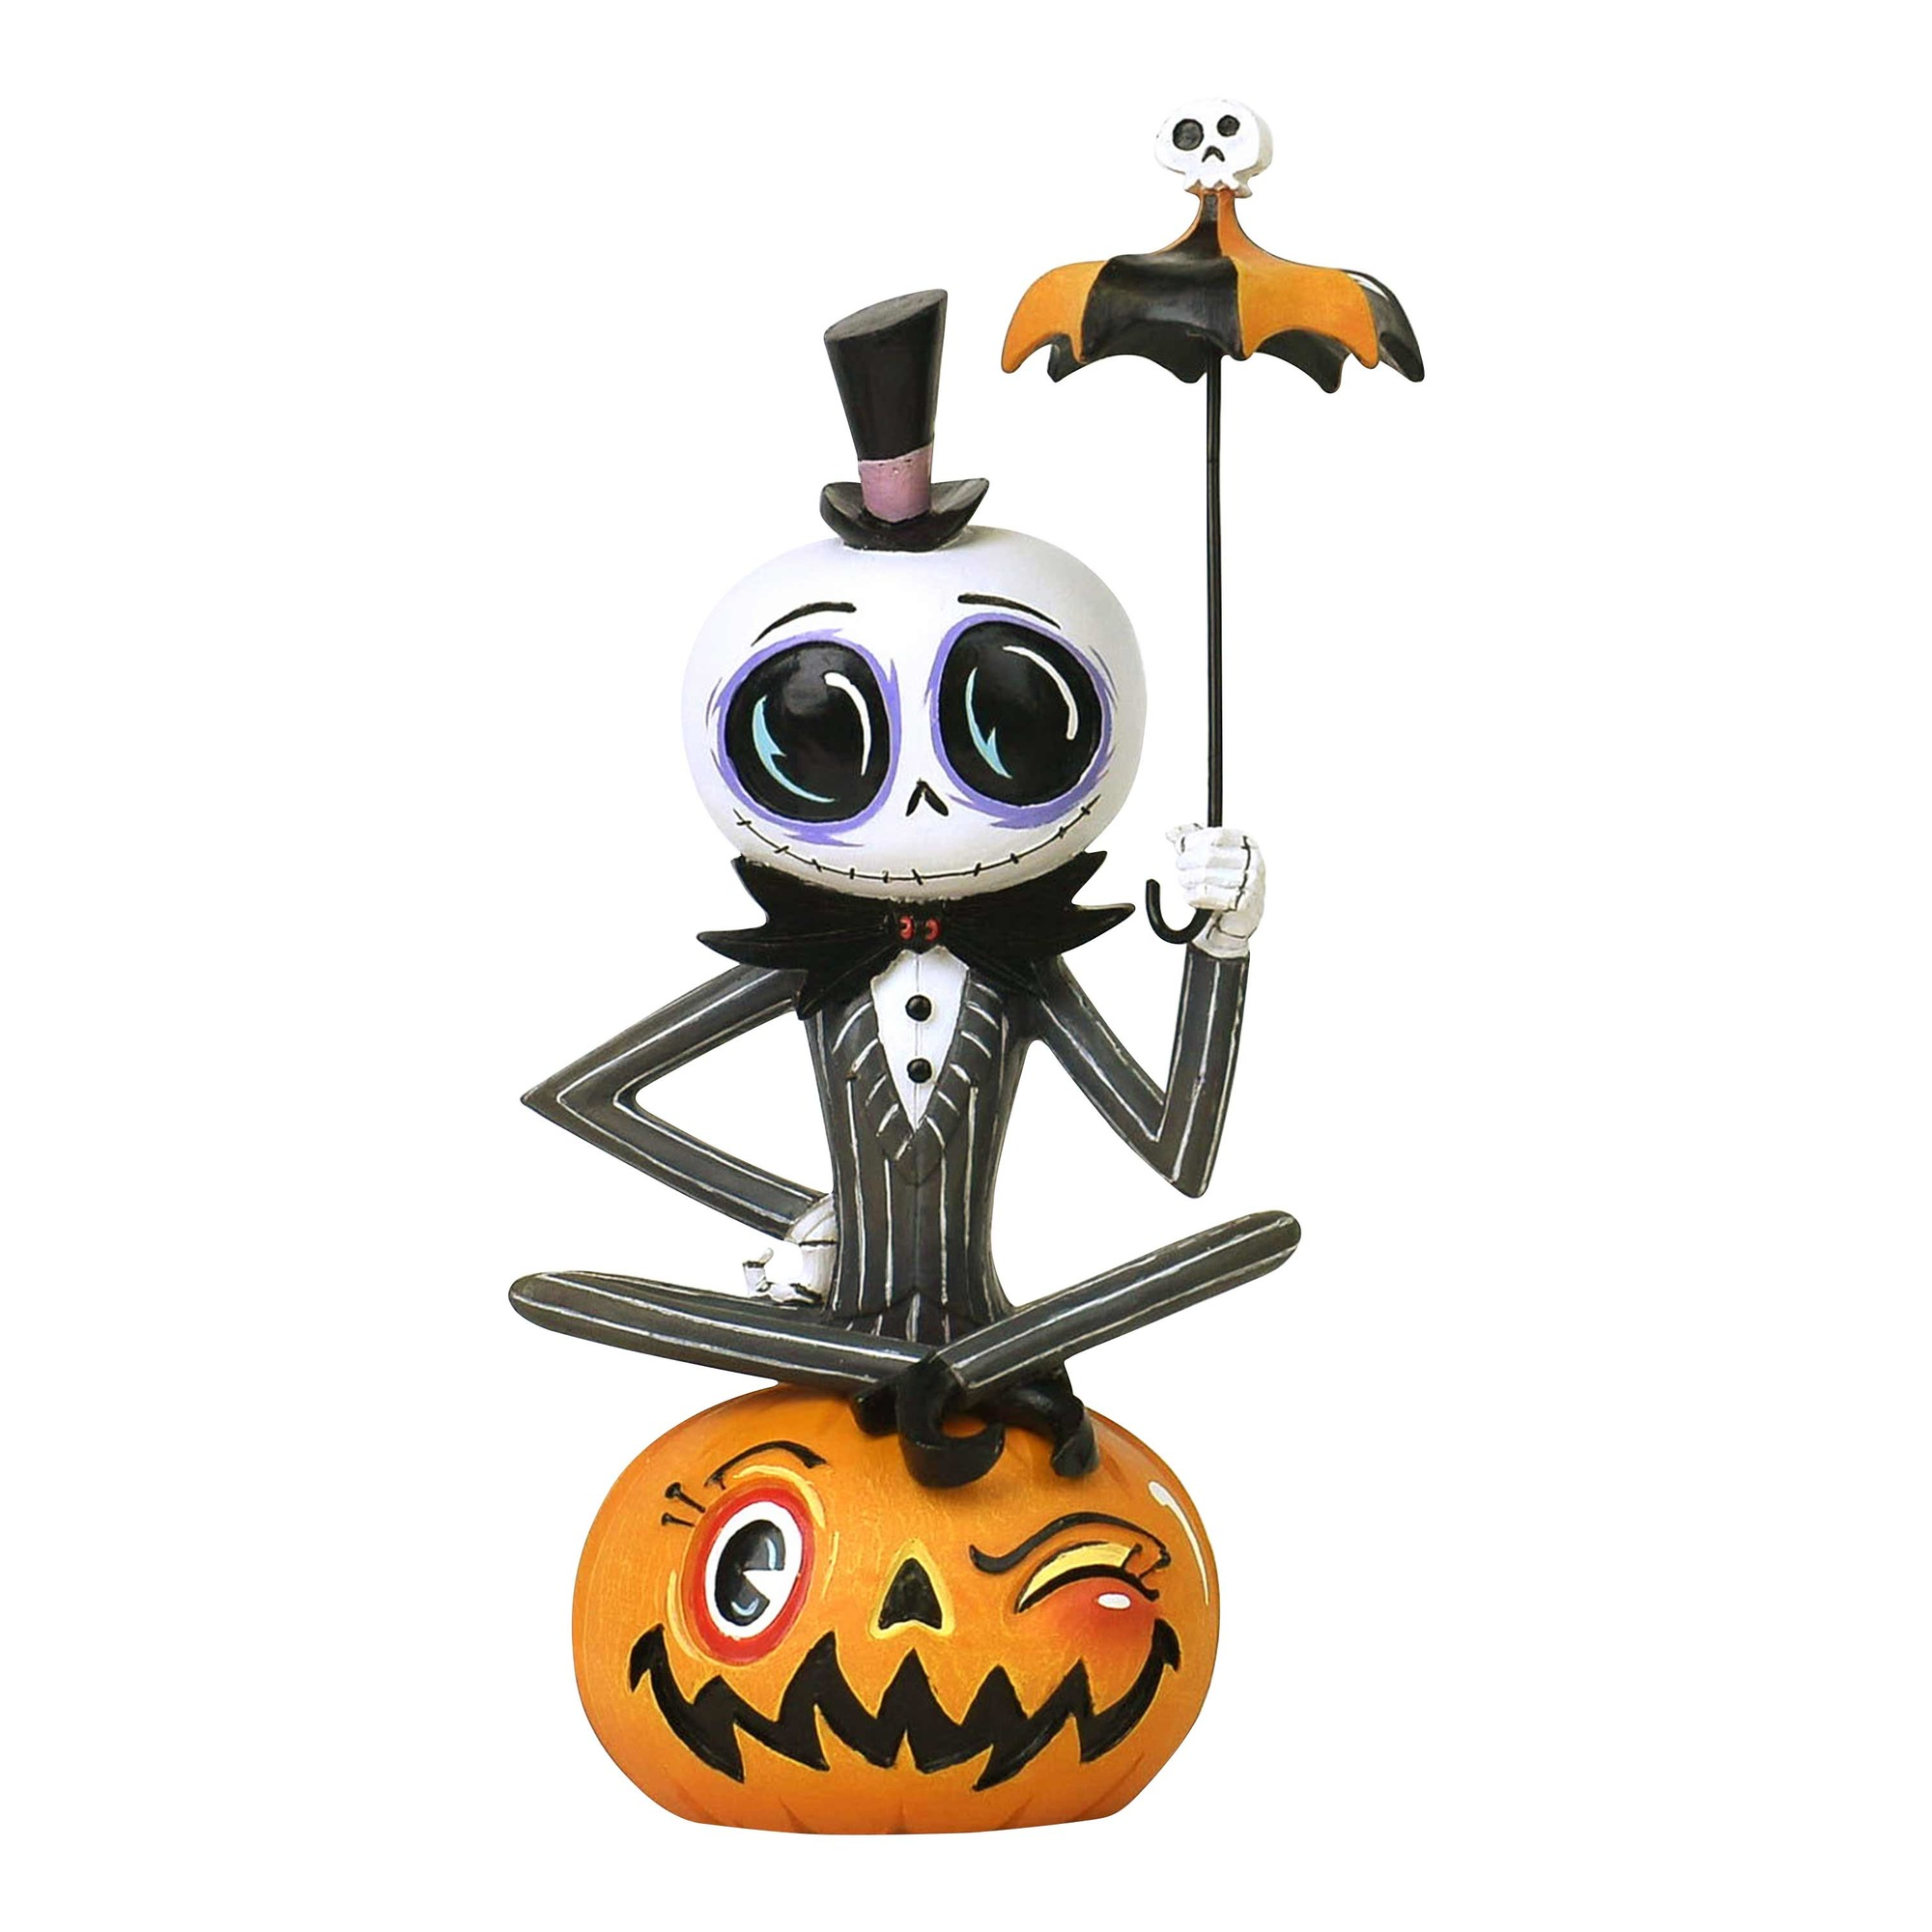 World of Miss Mindy Disney Jack Skellington Statue